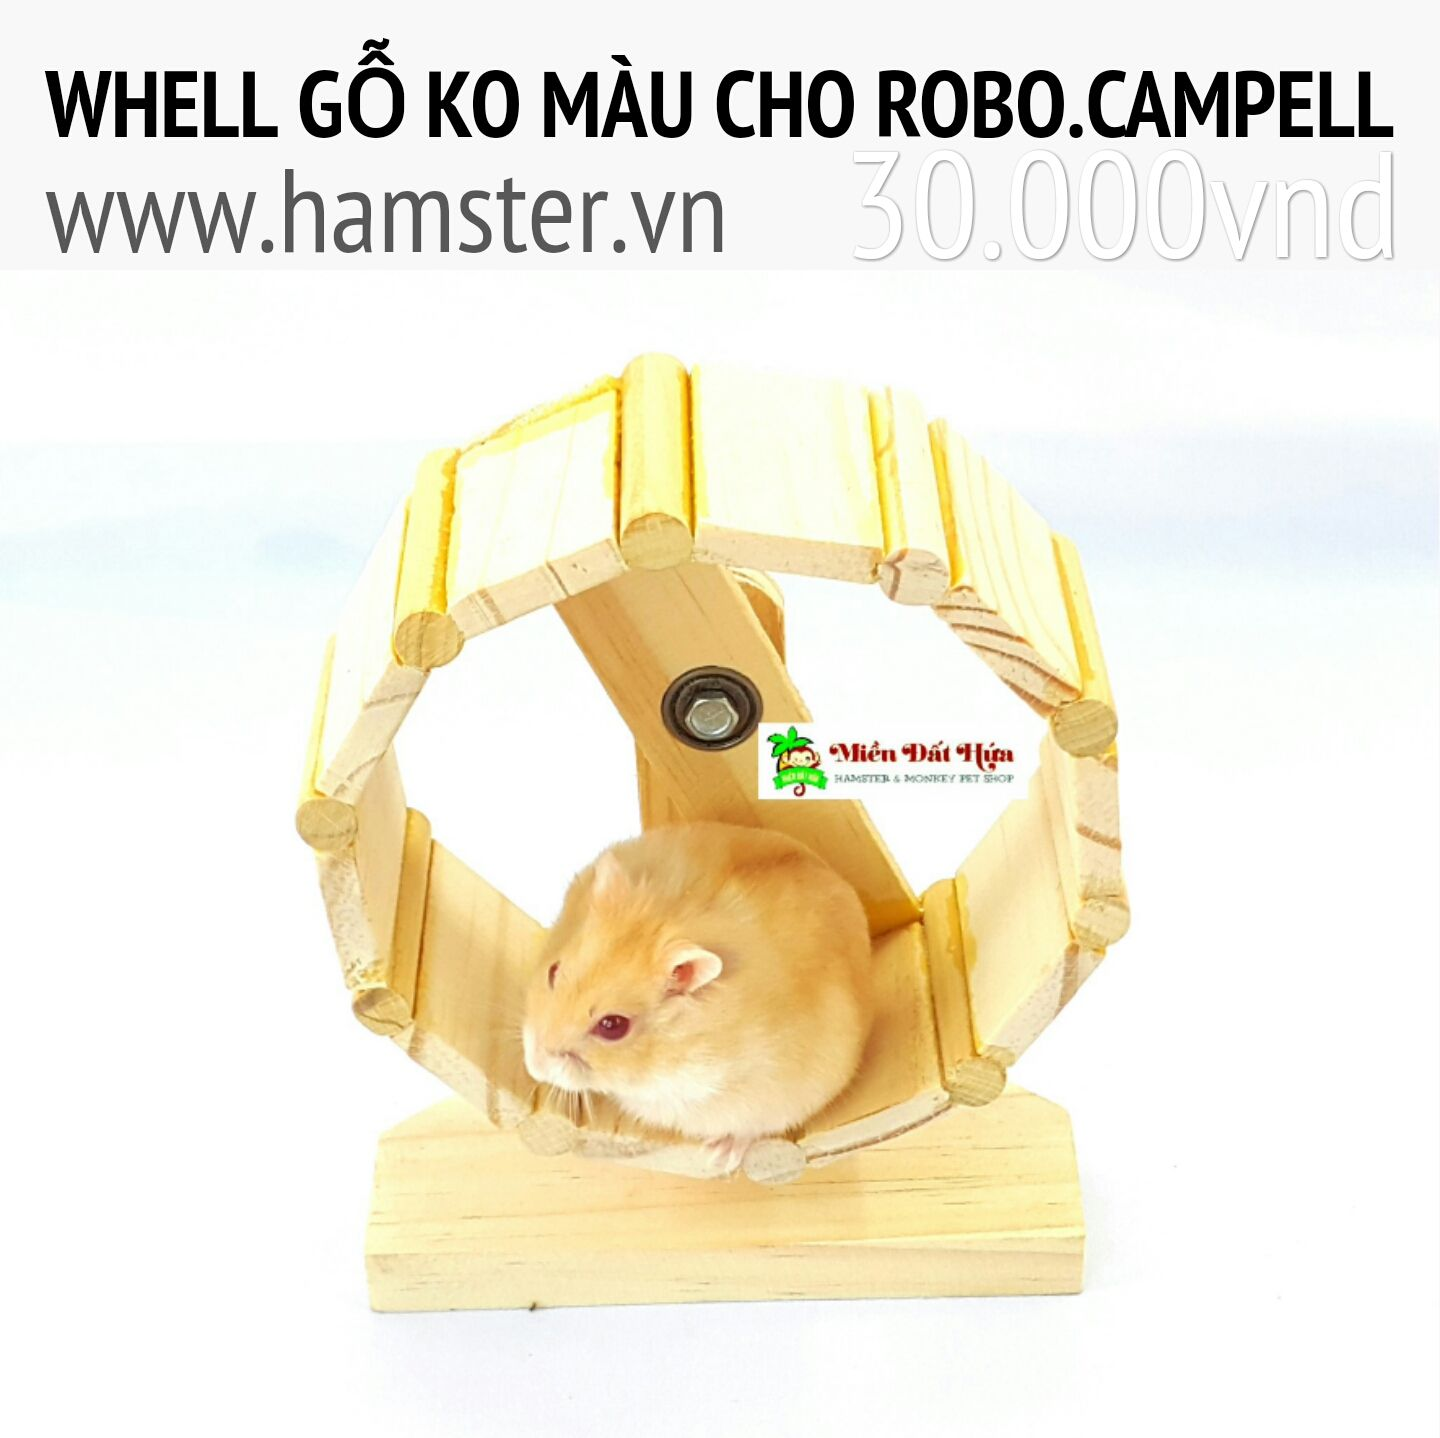 whell gỗ size robo.campell 40k